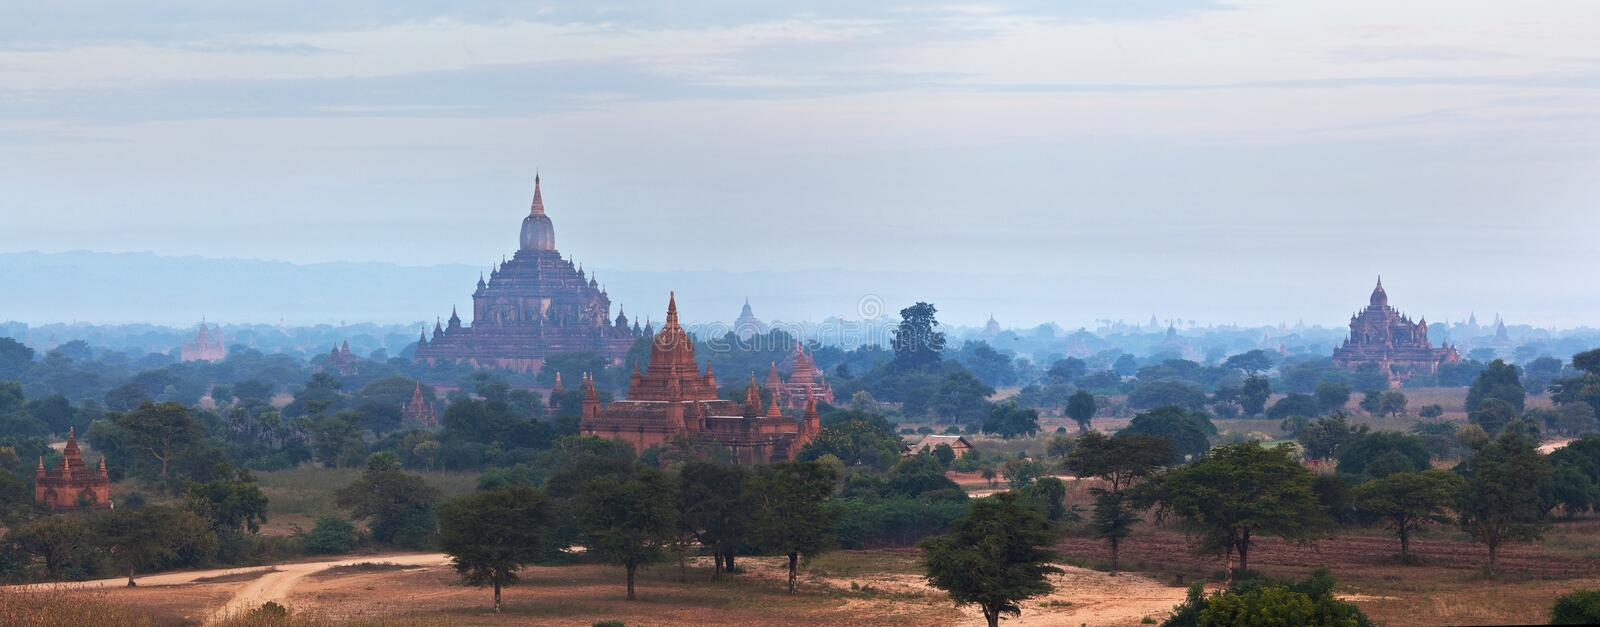 Bagan Archaeological Zone, Myanmar photographie stock